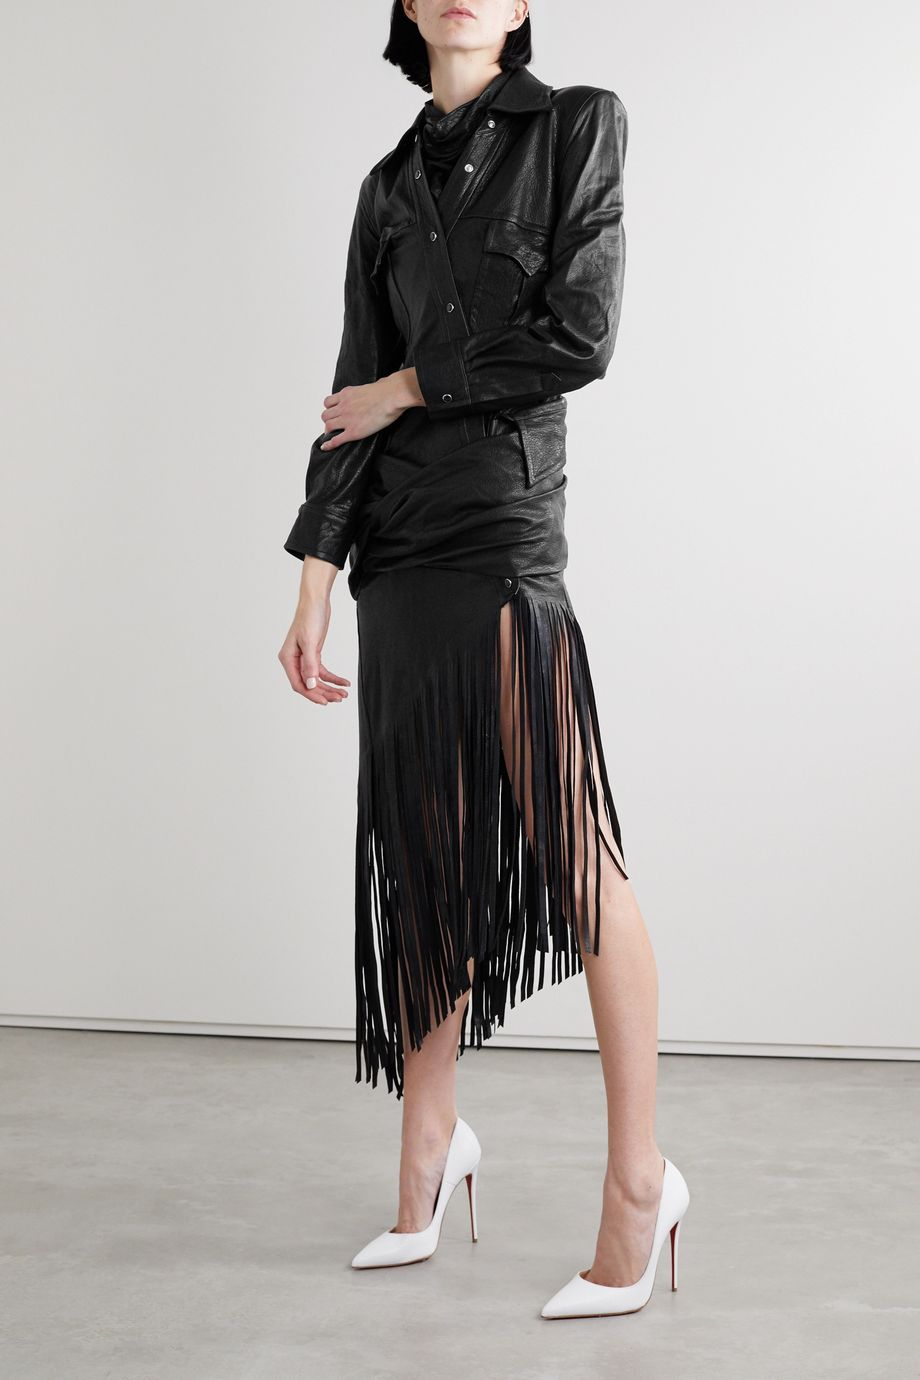 Alexander Wang Asymmetric fringed draped leather shirt dress